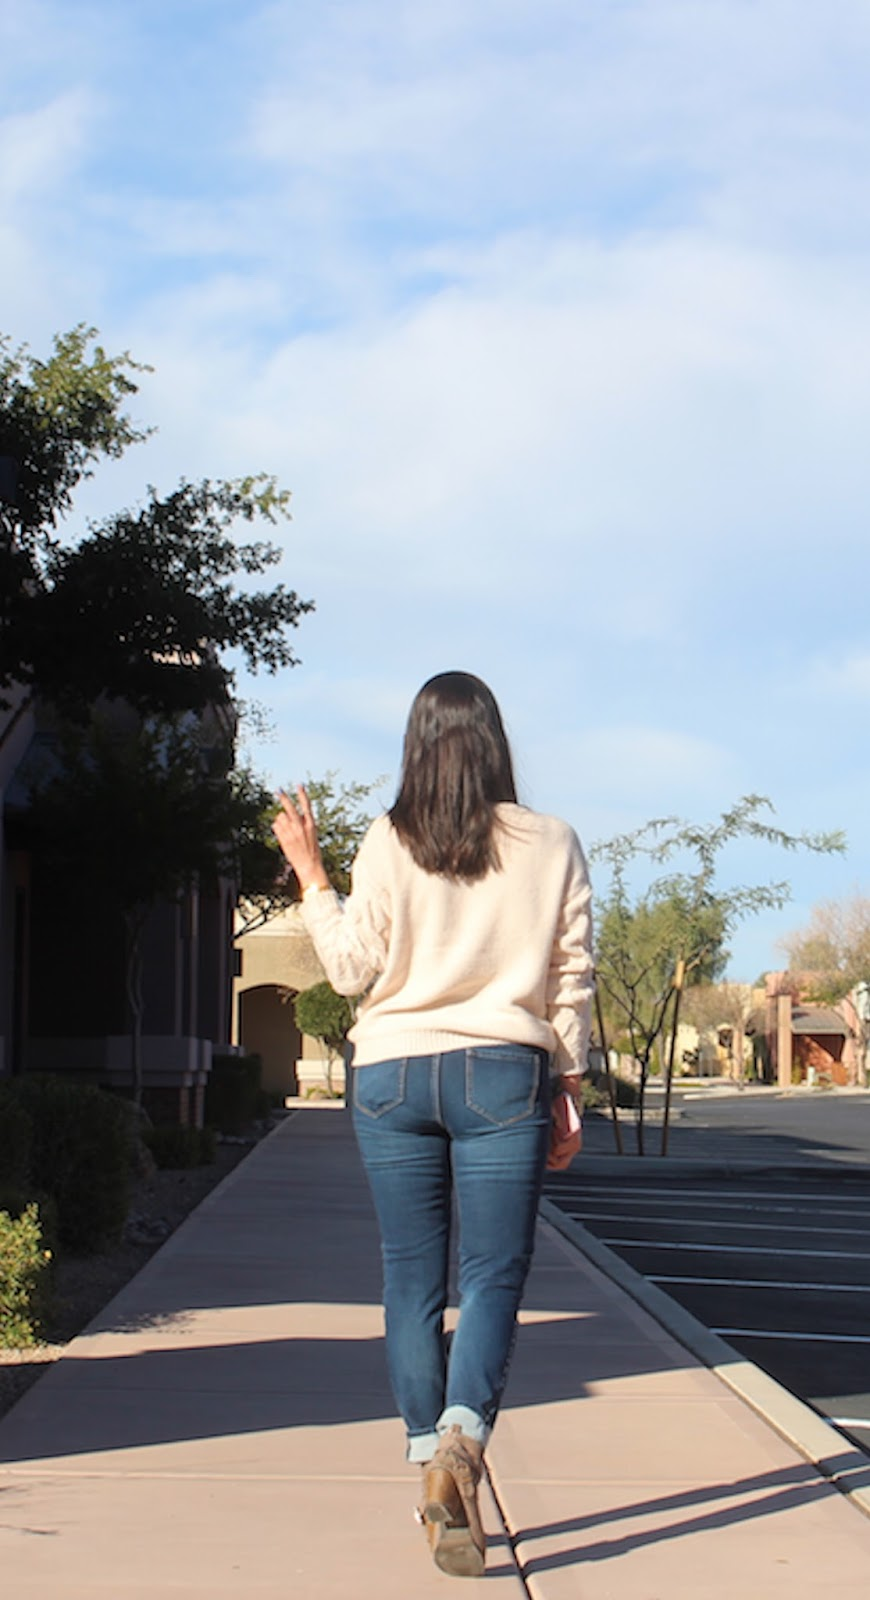 I am hold the peace sign, as I walk away from the camera.